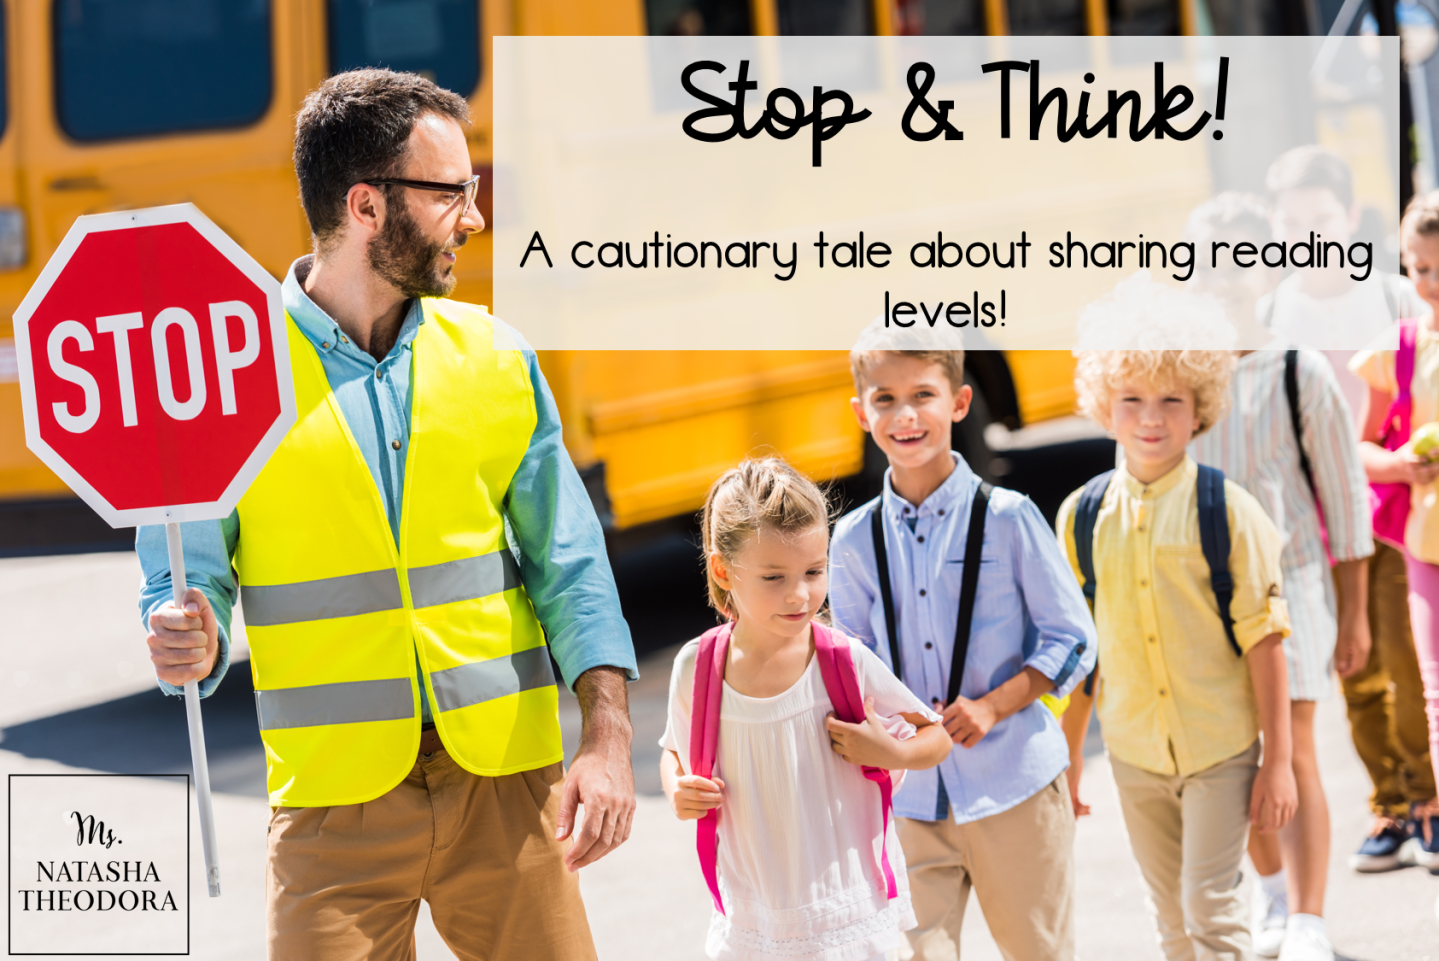 Stop & Think! A Cautionary Tale About Sharing Reading Levels